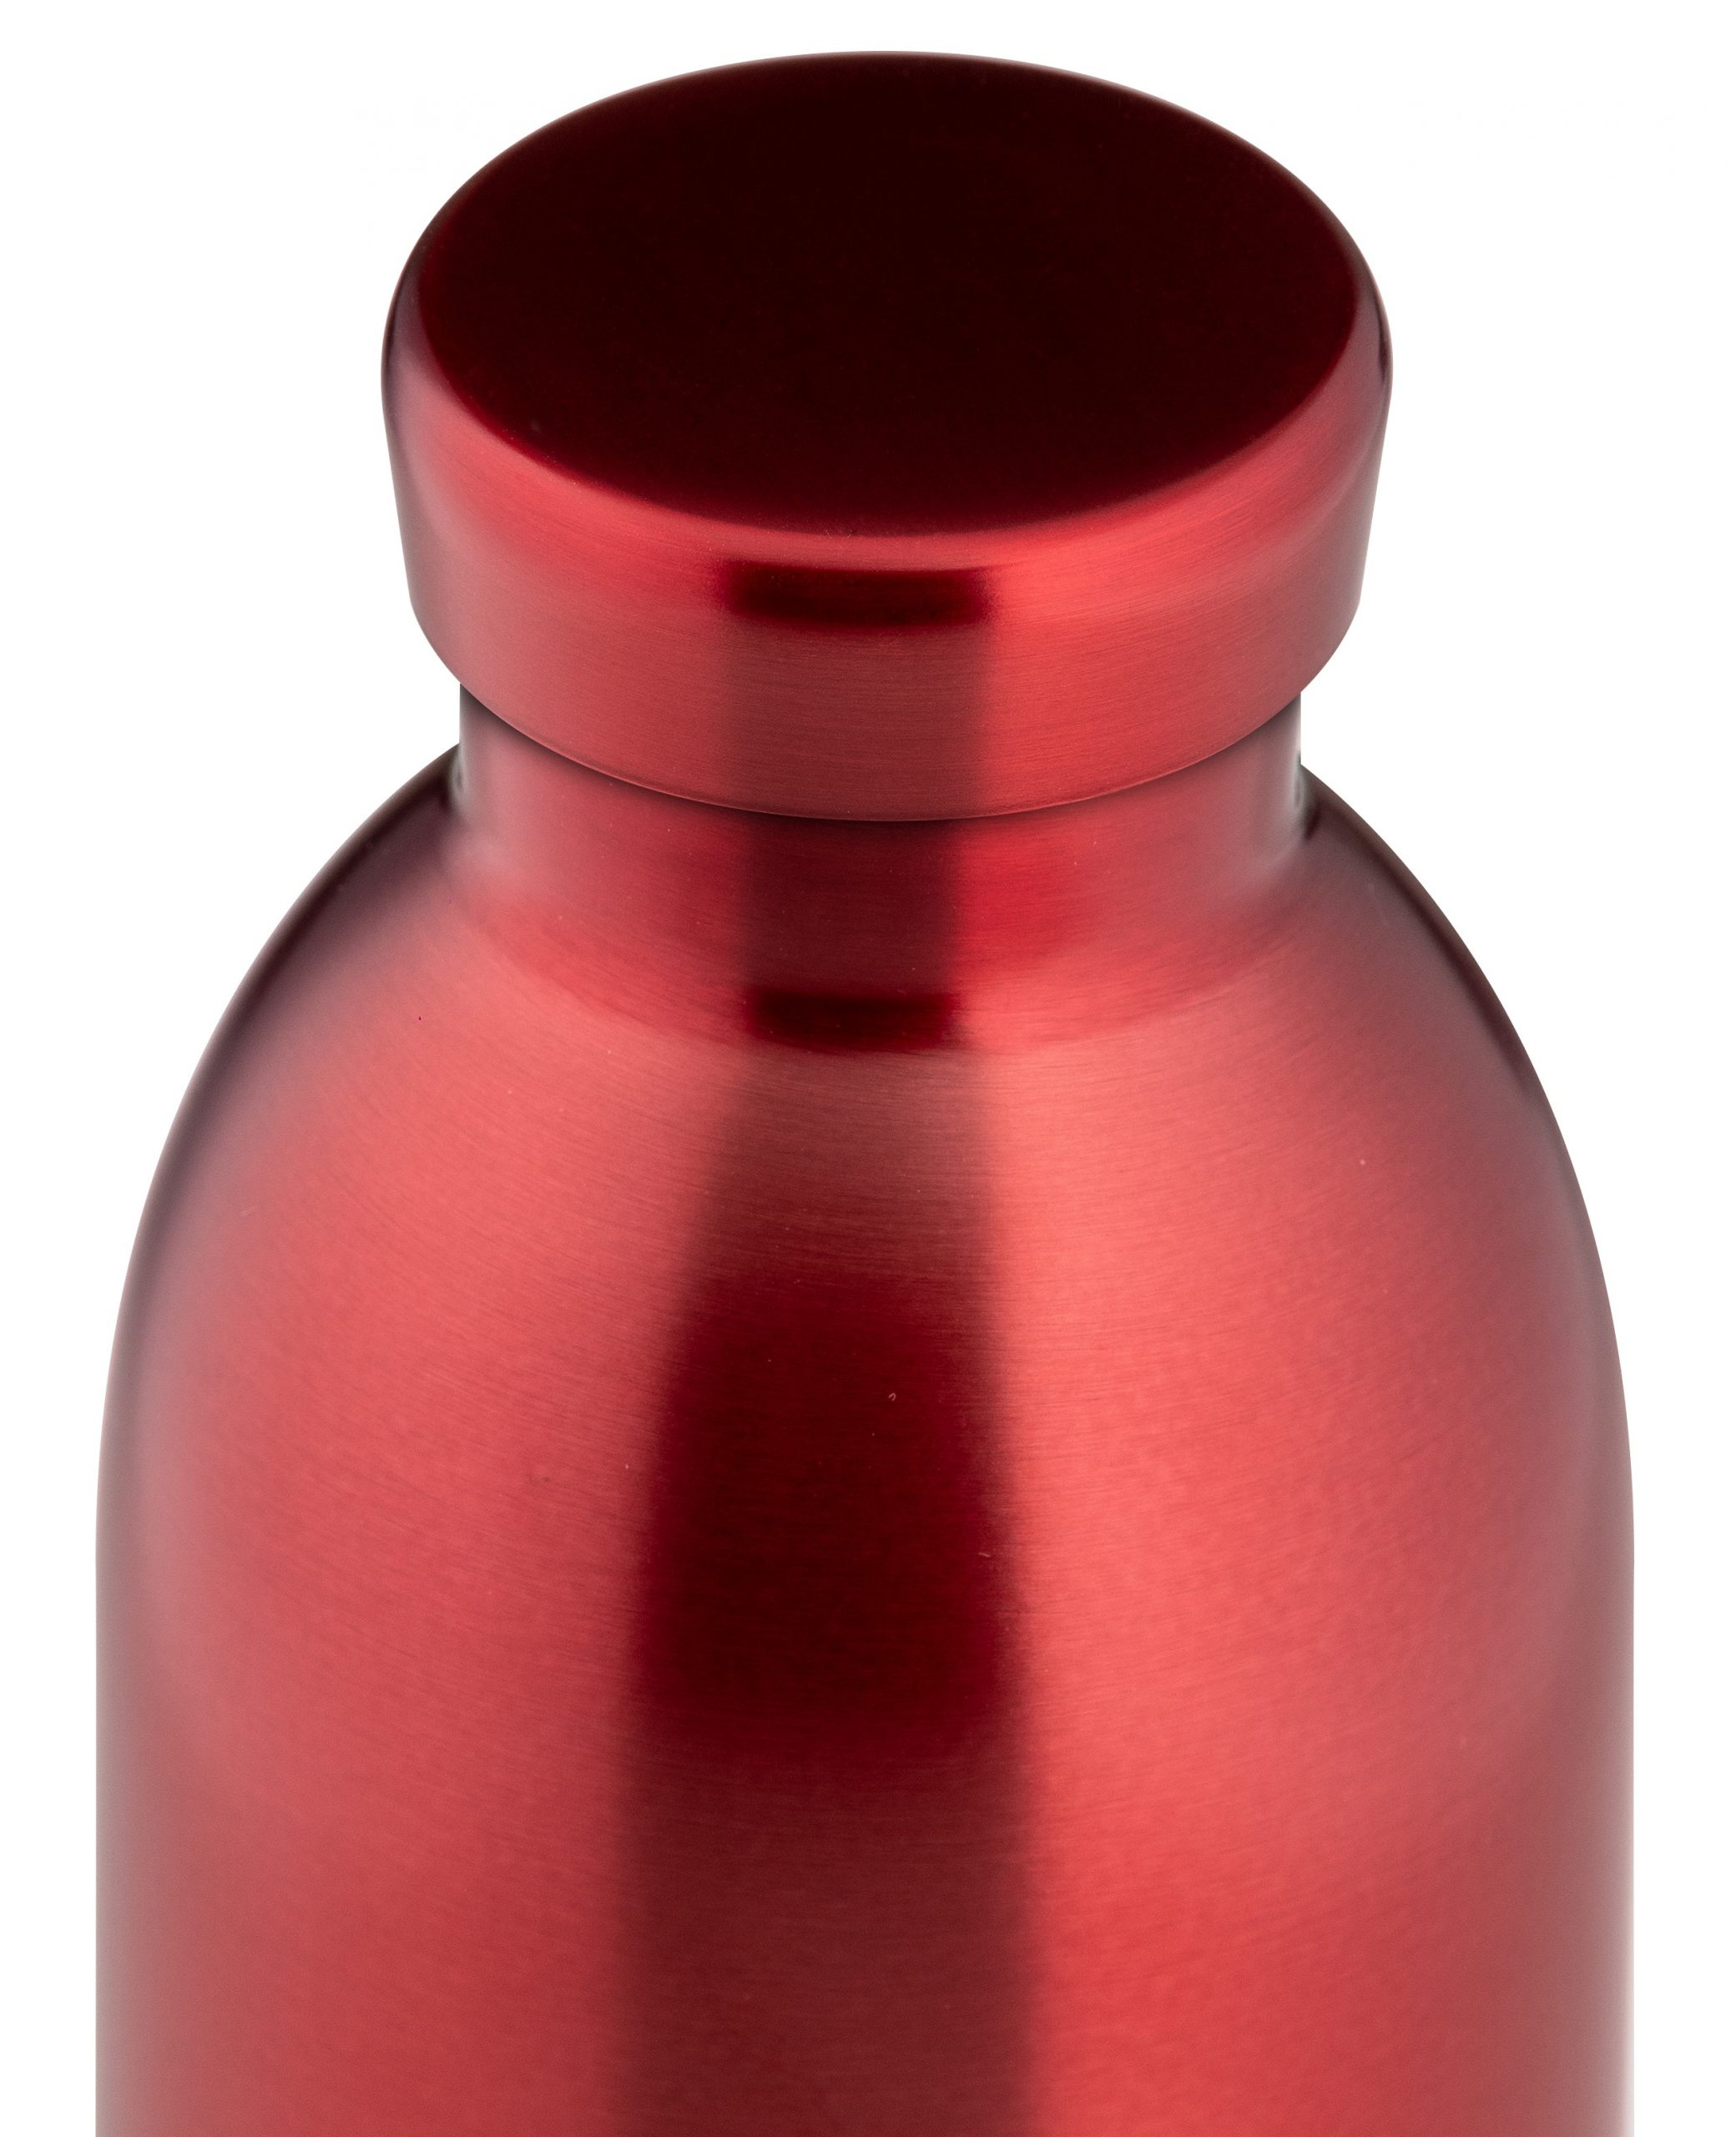 24bottles® Clima Bottle 500ml – Chianti Red